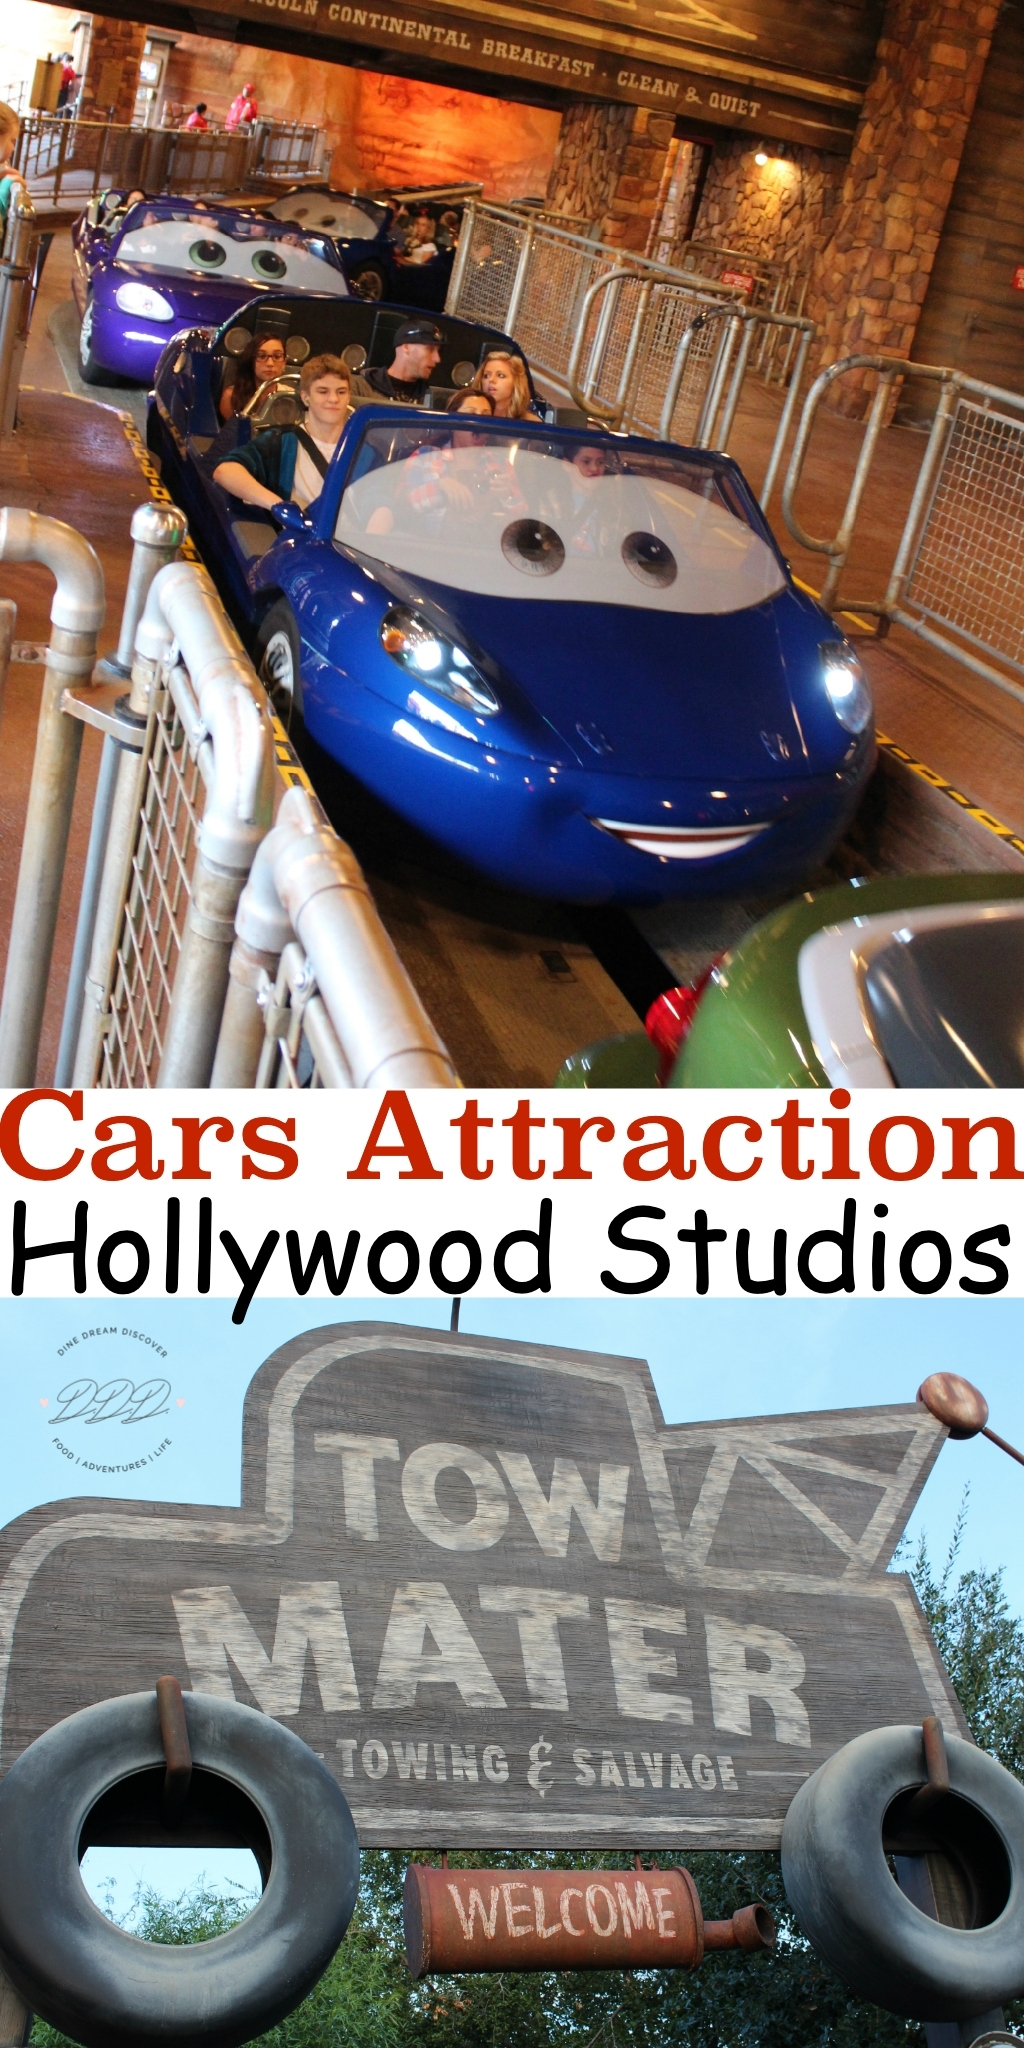 Hollywood Studios is one of my favorite Disney World parks. A new Cars attraction has opened!  Here is what you should know about this ride…